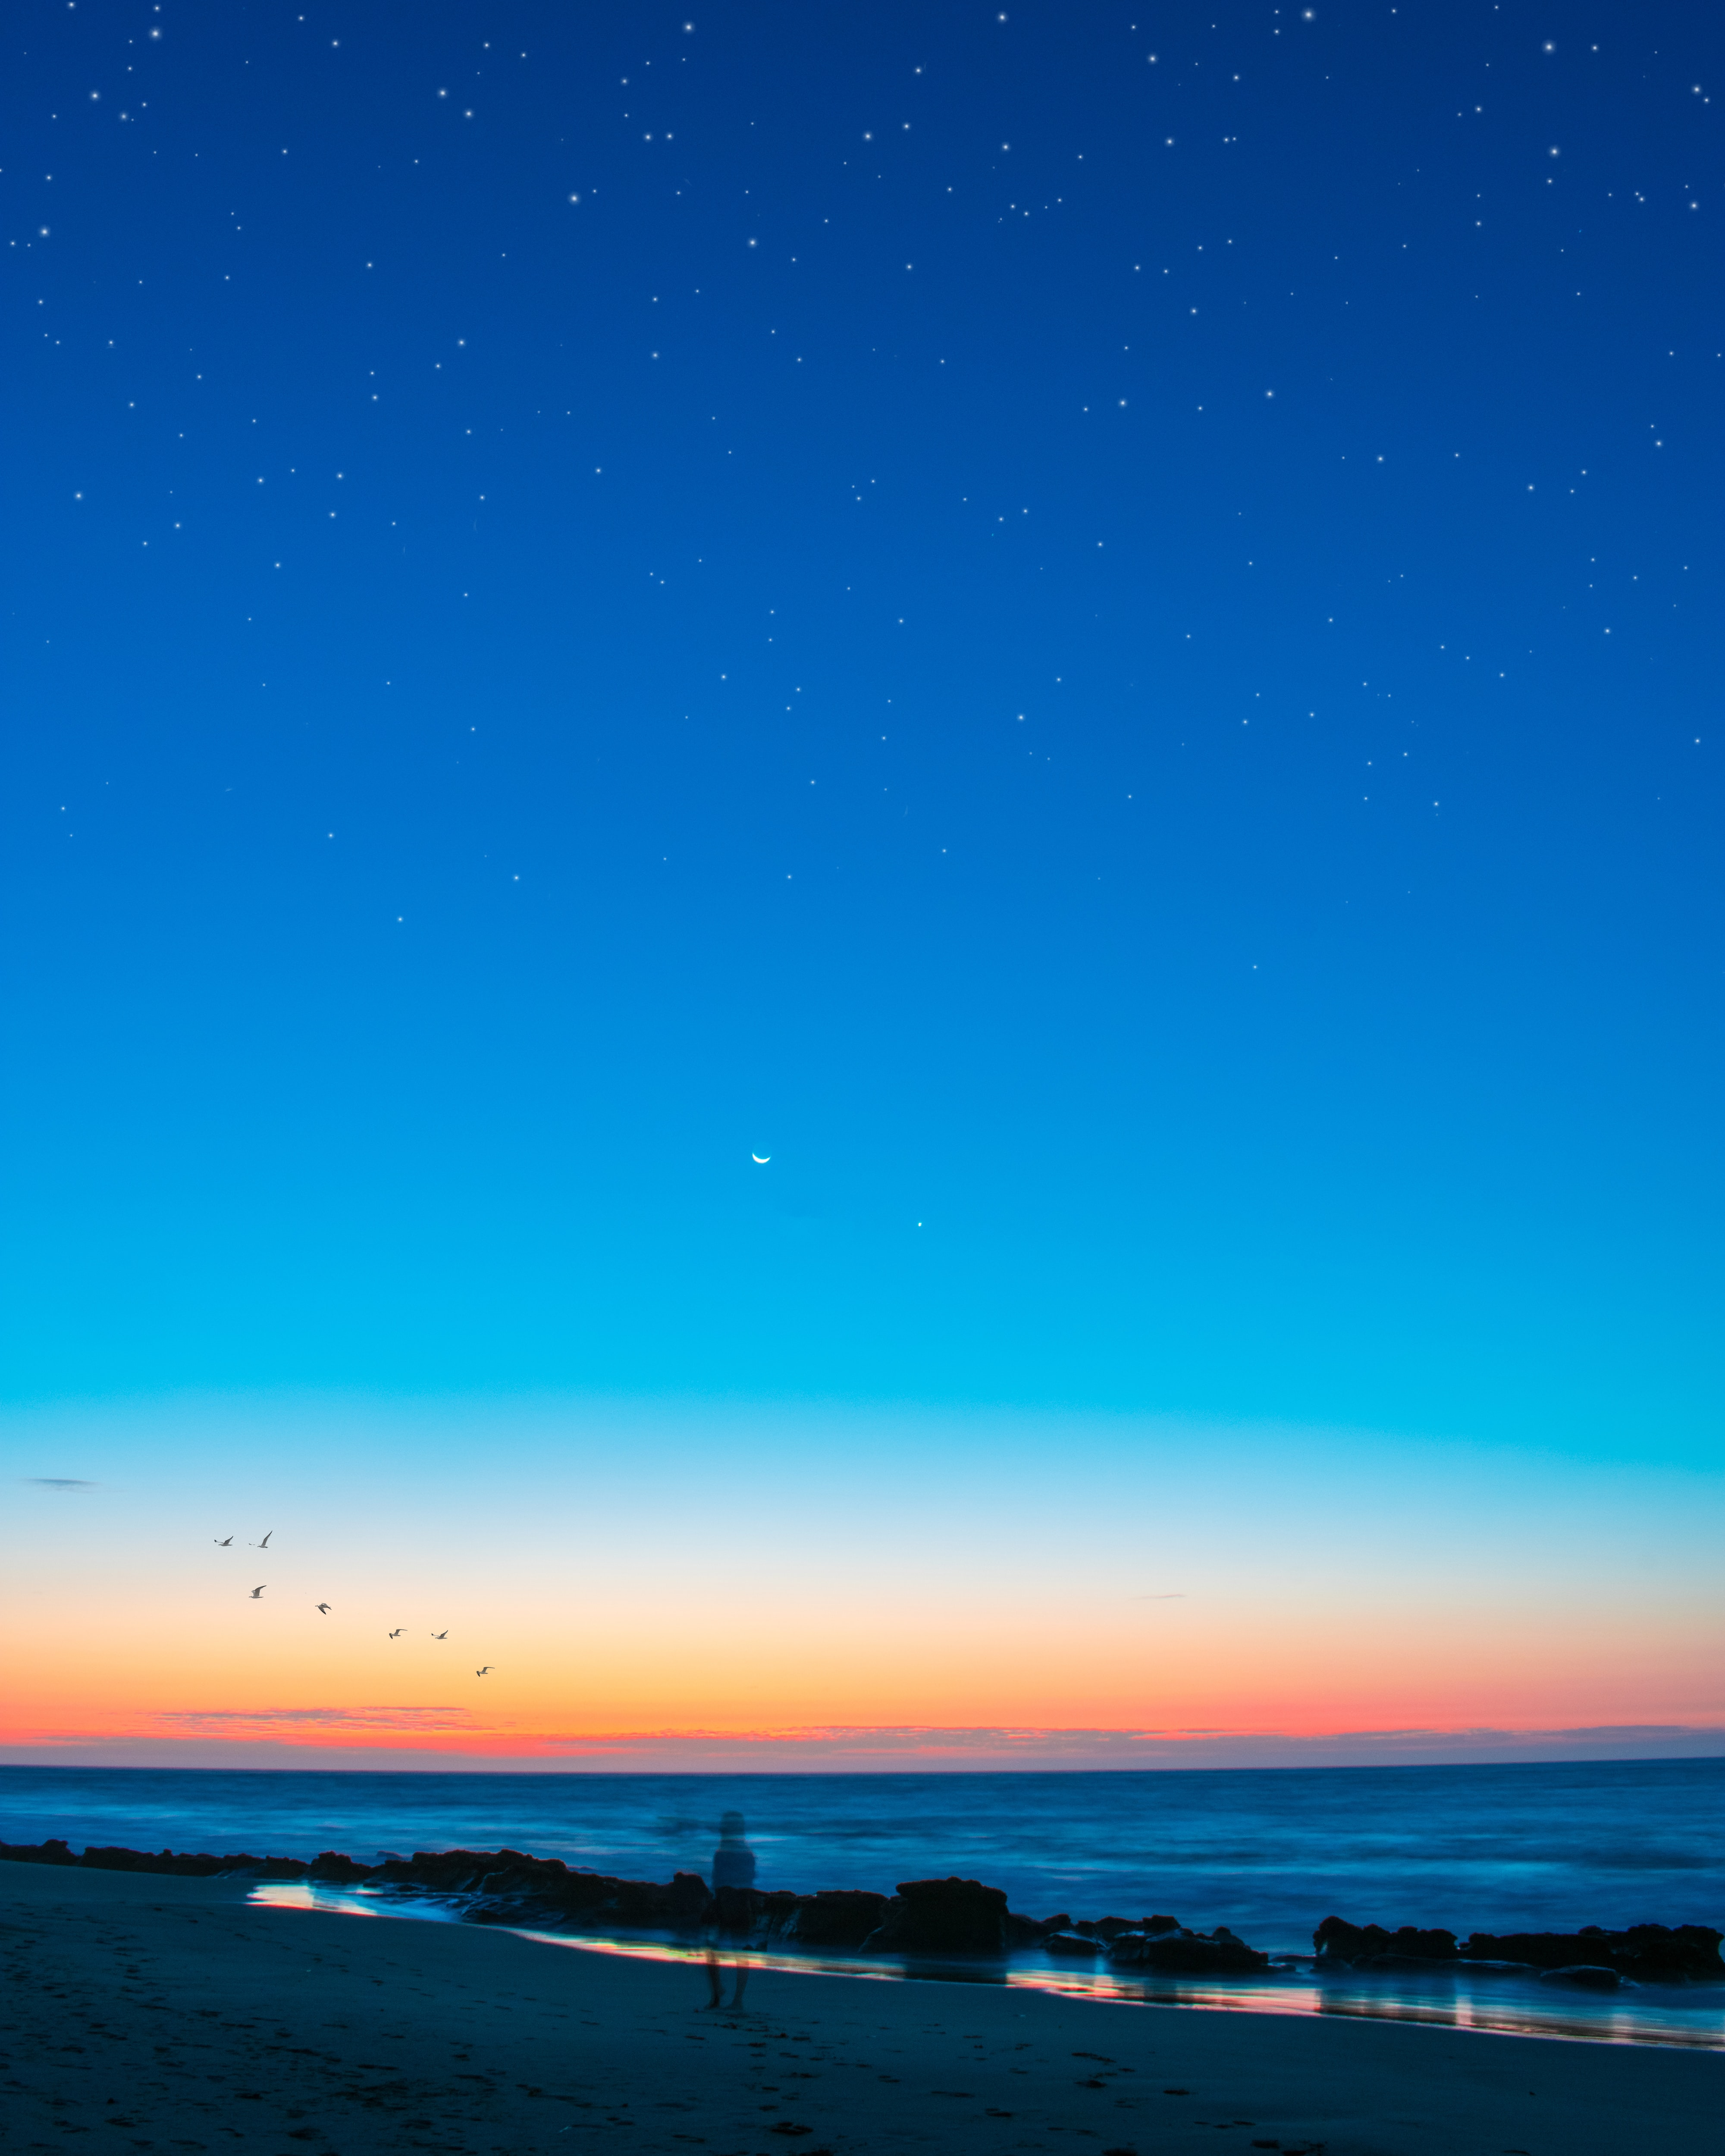 body of water under blue sky with stars